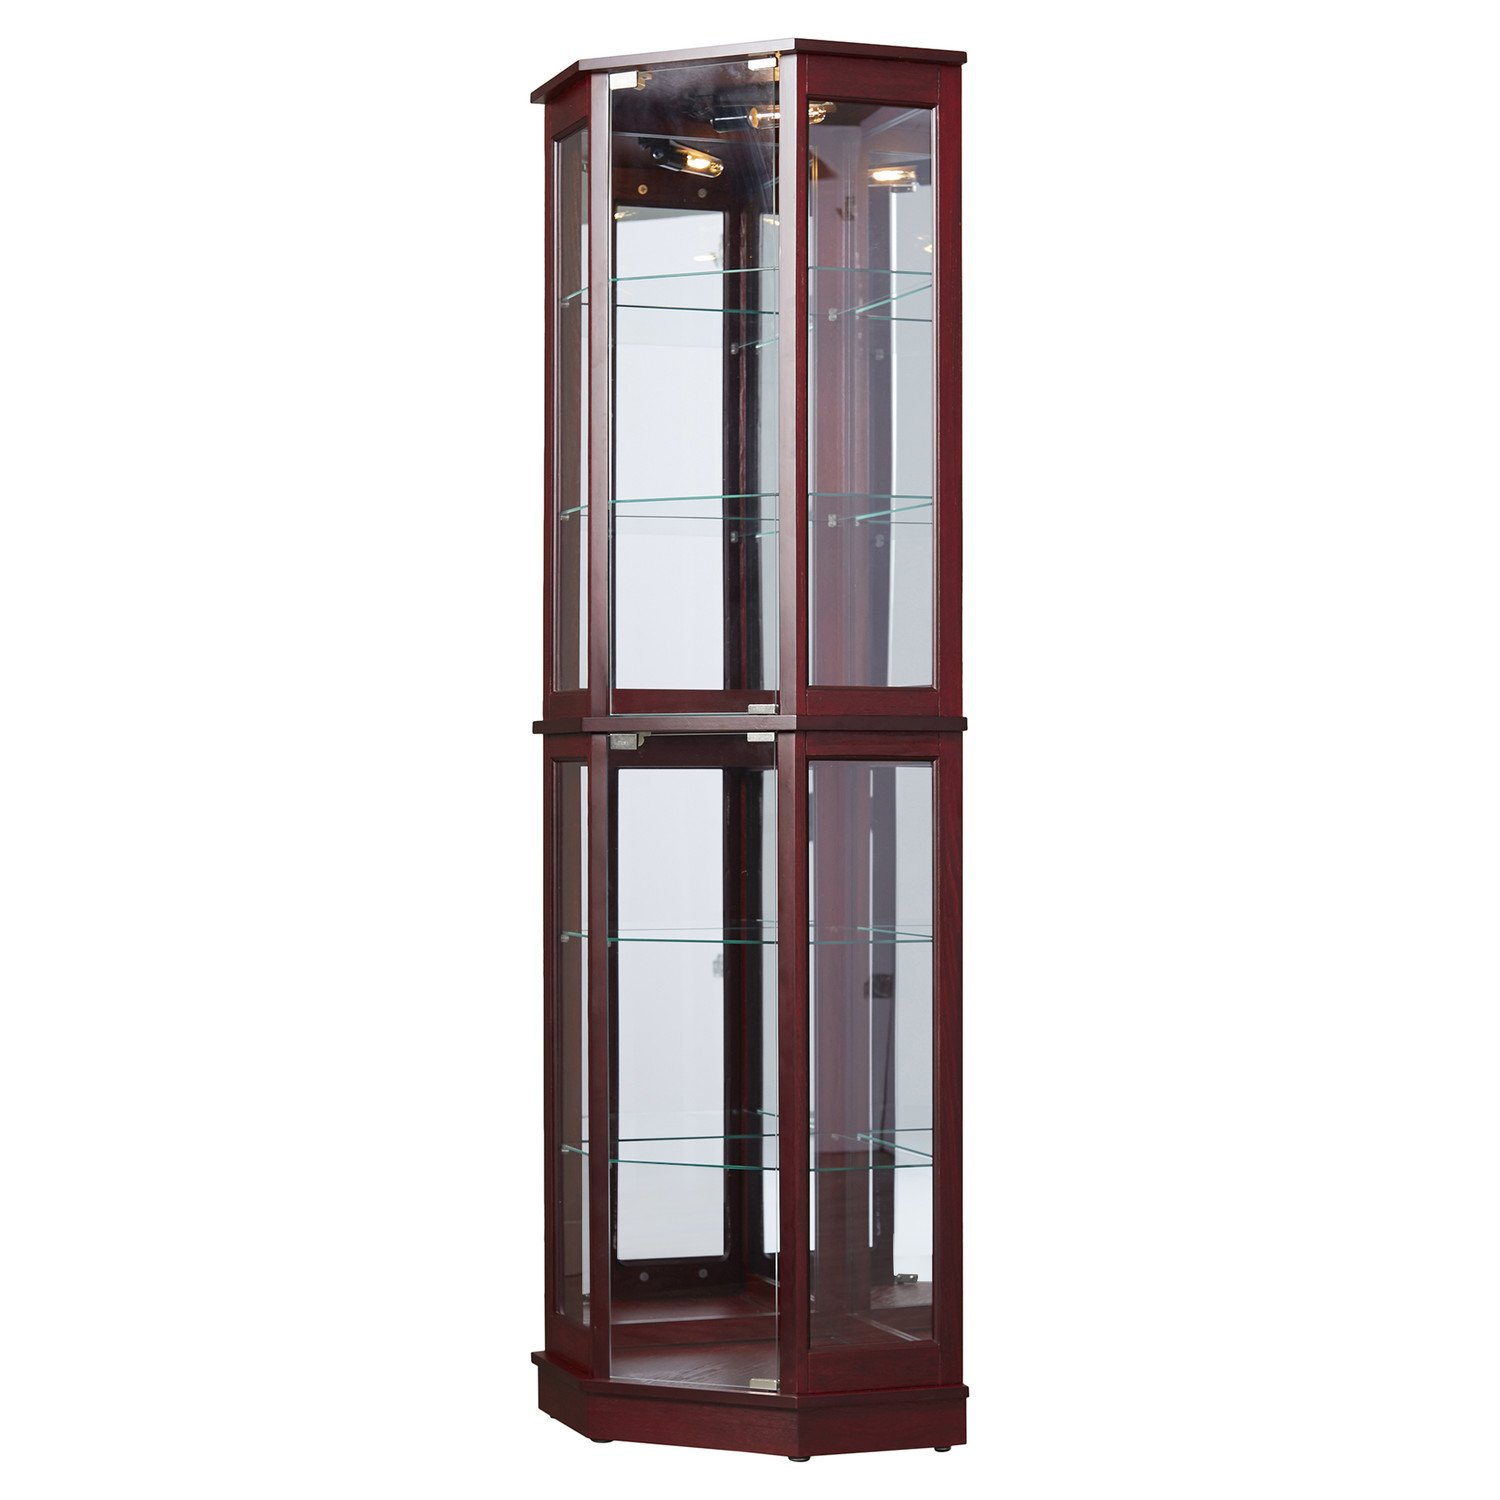 Tall Lighted Corner Curio Cabinet Corner Hutch For Collectibles China Or As A Liquor Cabinet Display Case With 2 Shelf Platforms 4 Adjustable